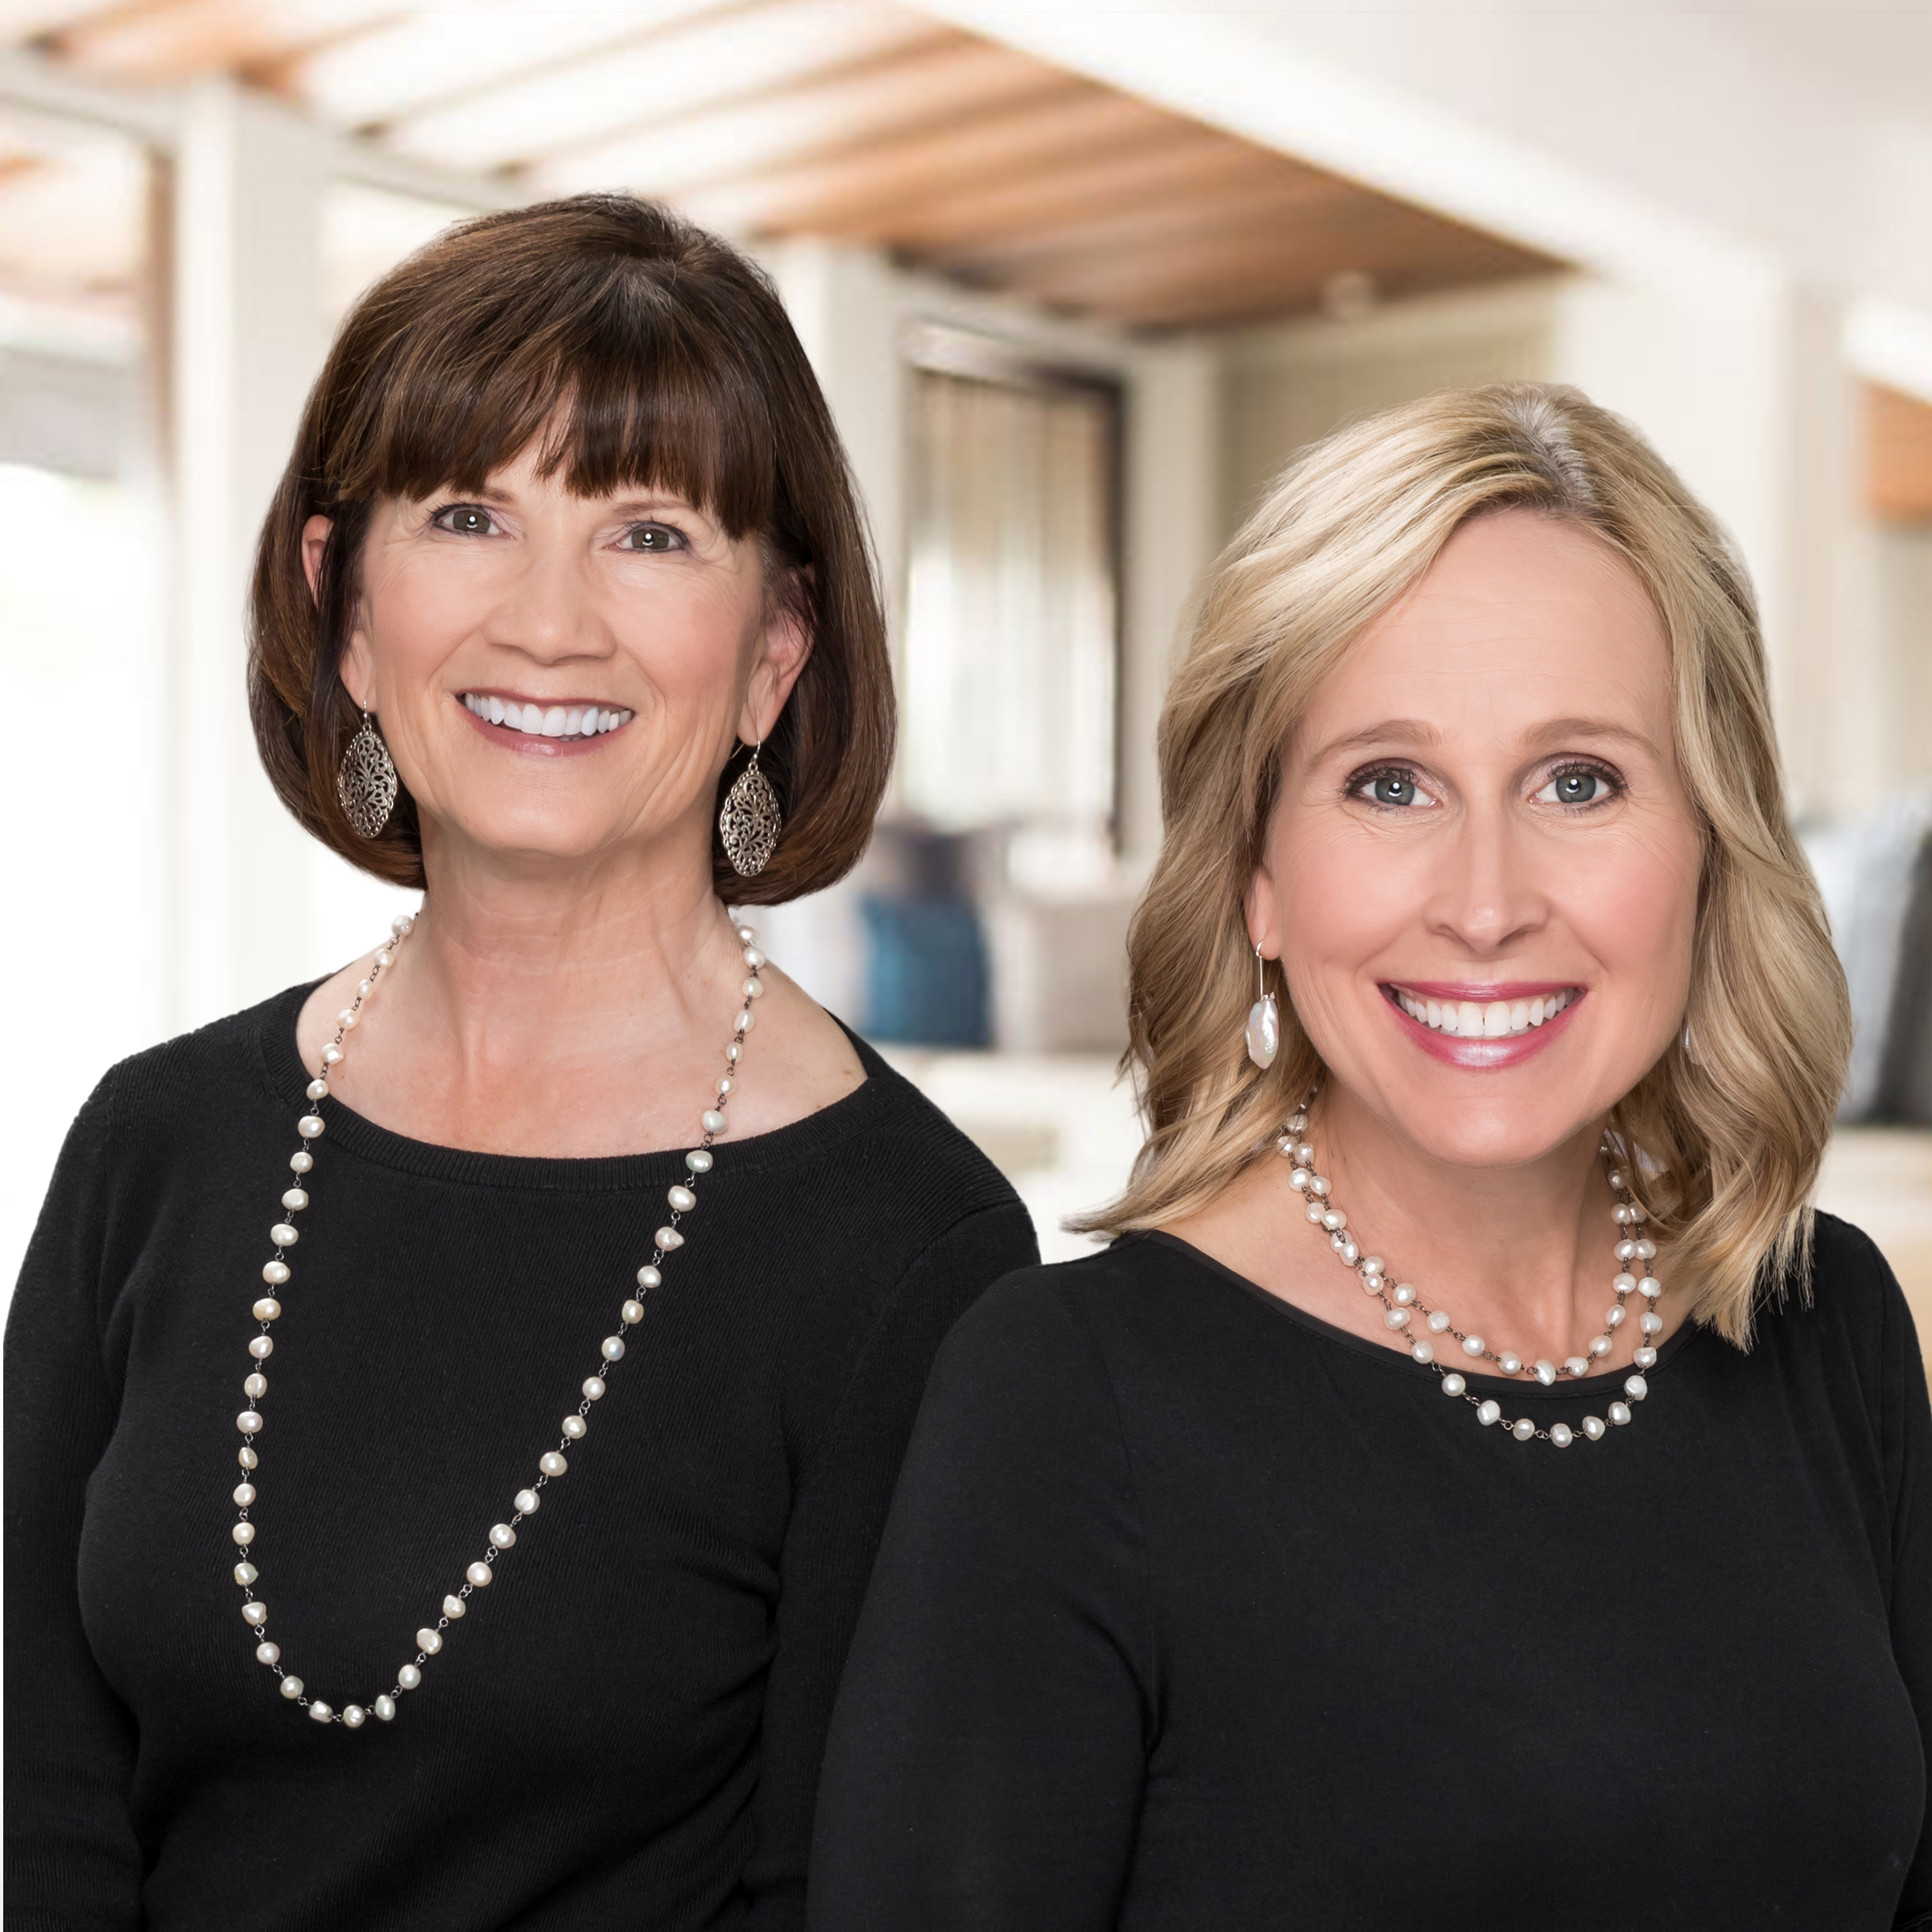 Texas Property Sisters Featured in February's McKinney/Allen Living Magazine